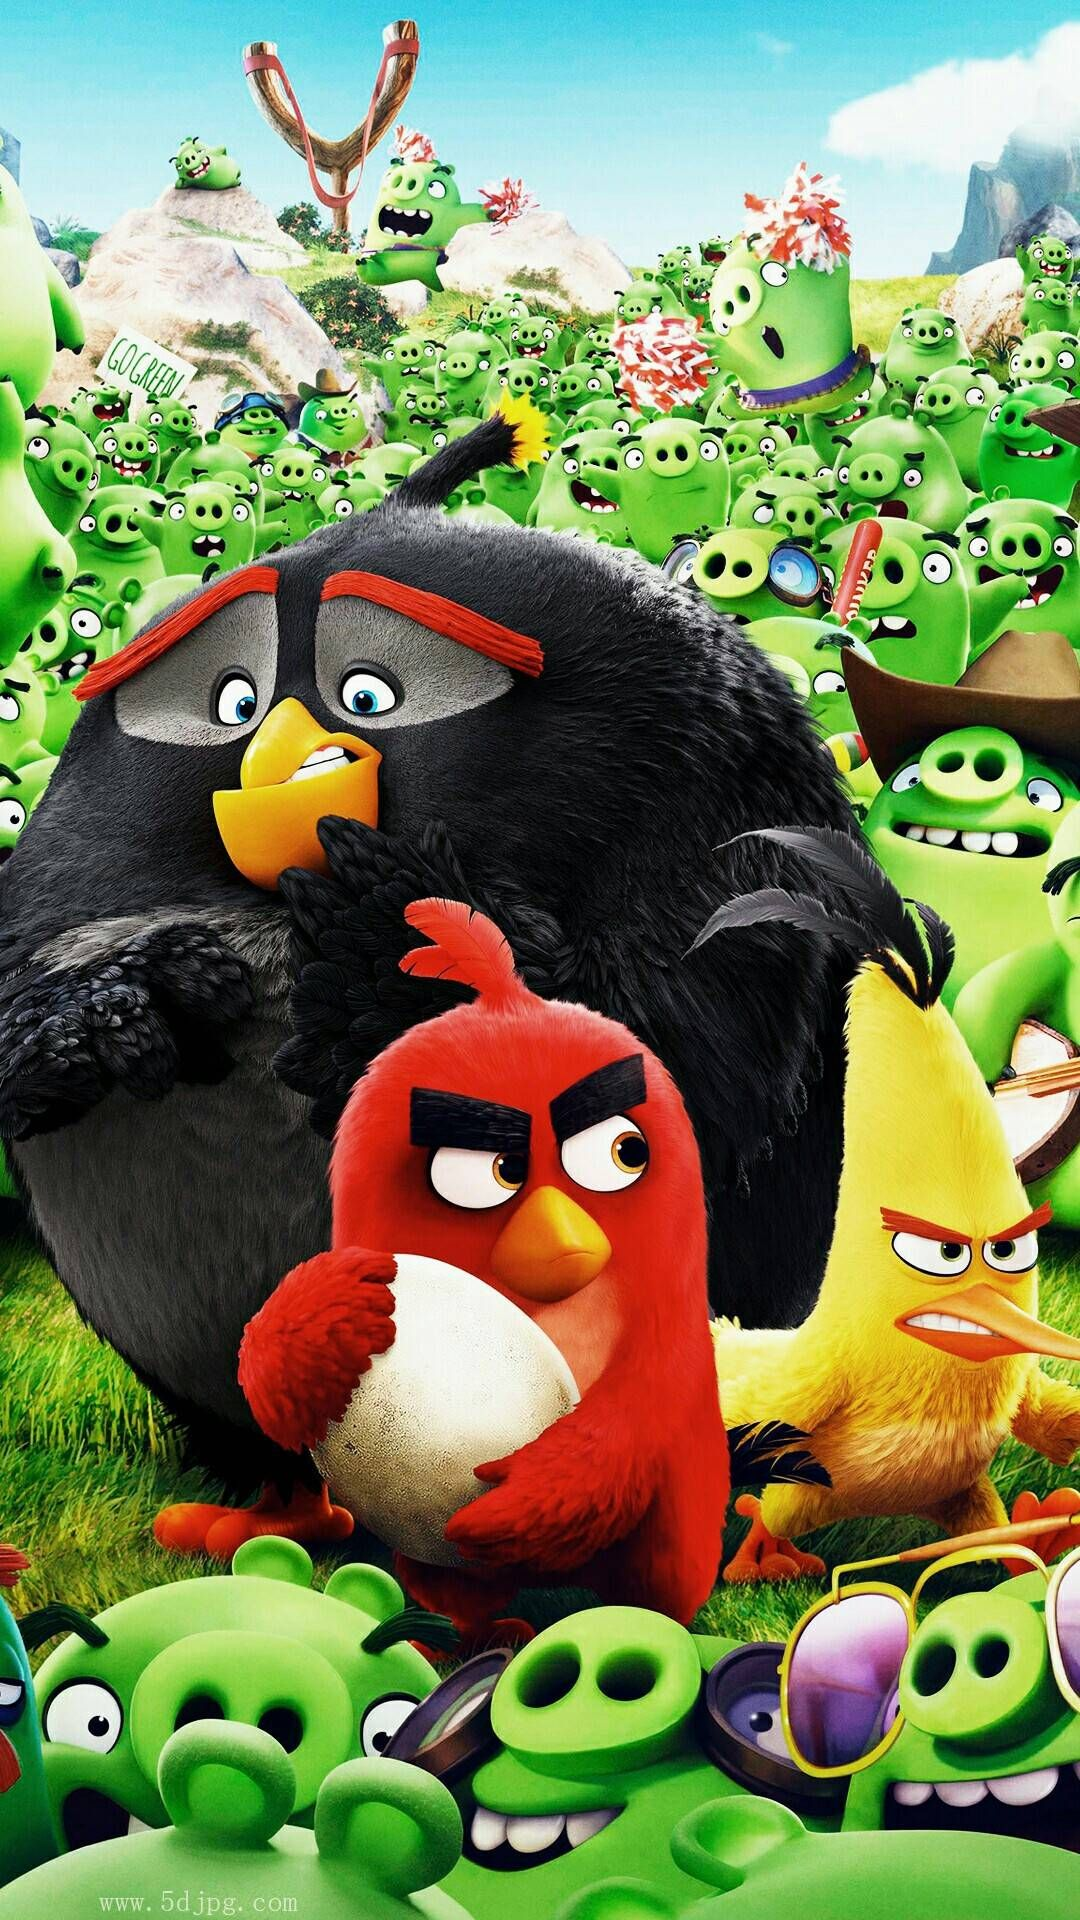 Stockwallpapersorg 15387 Angry Birds Wallpaper